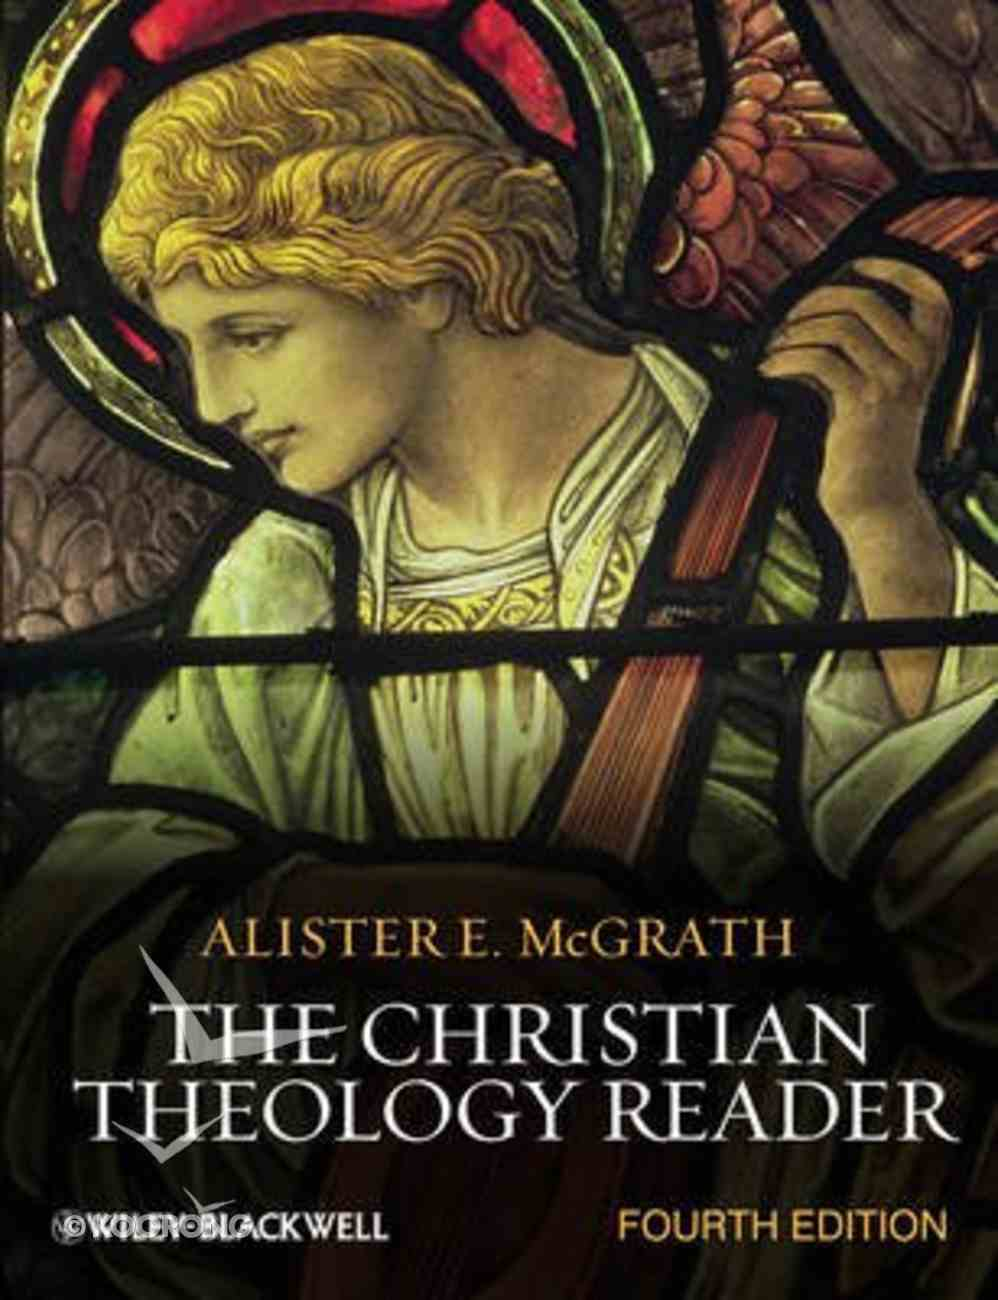 The Christian Theology Reader (4th Edition) Paperback